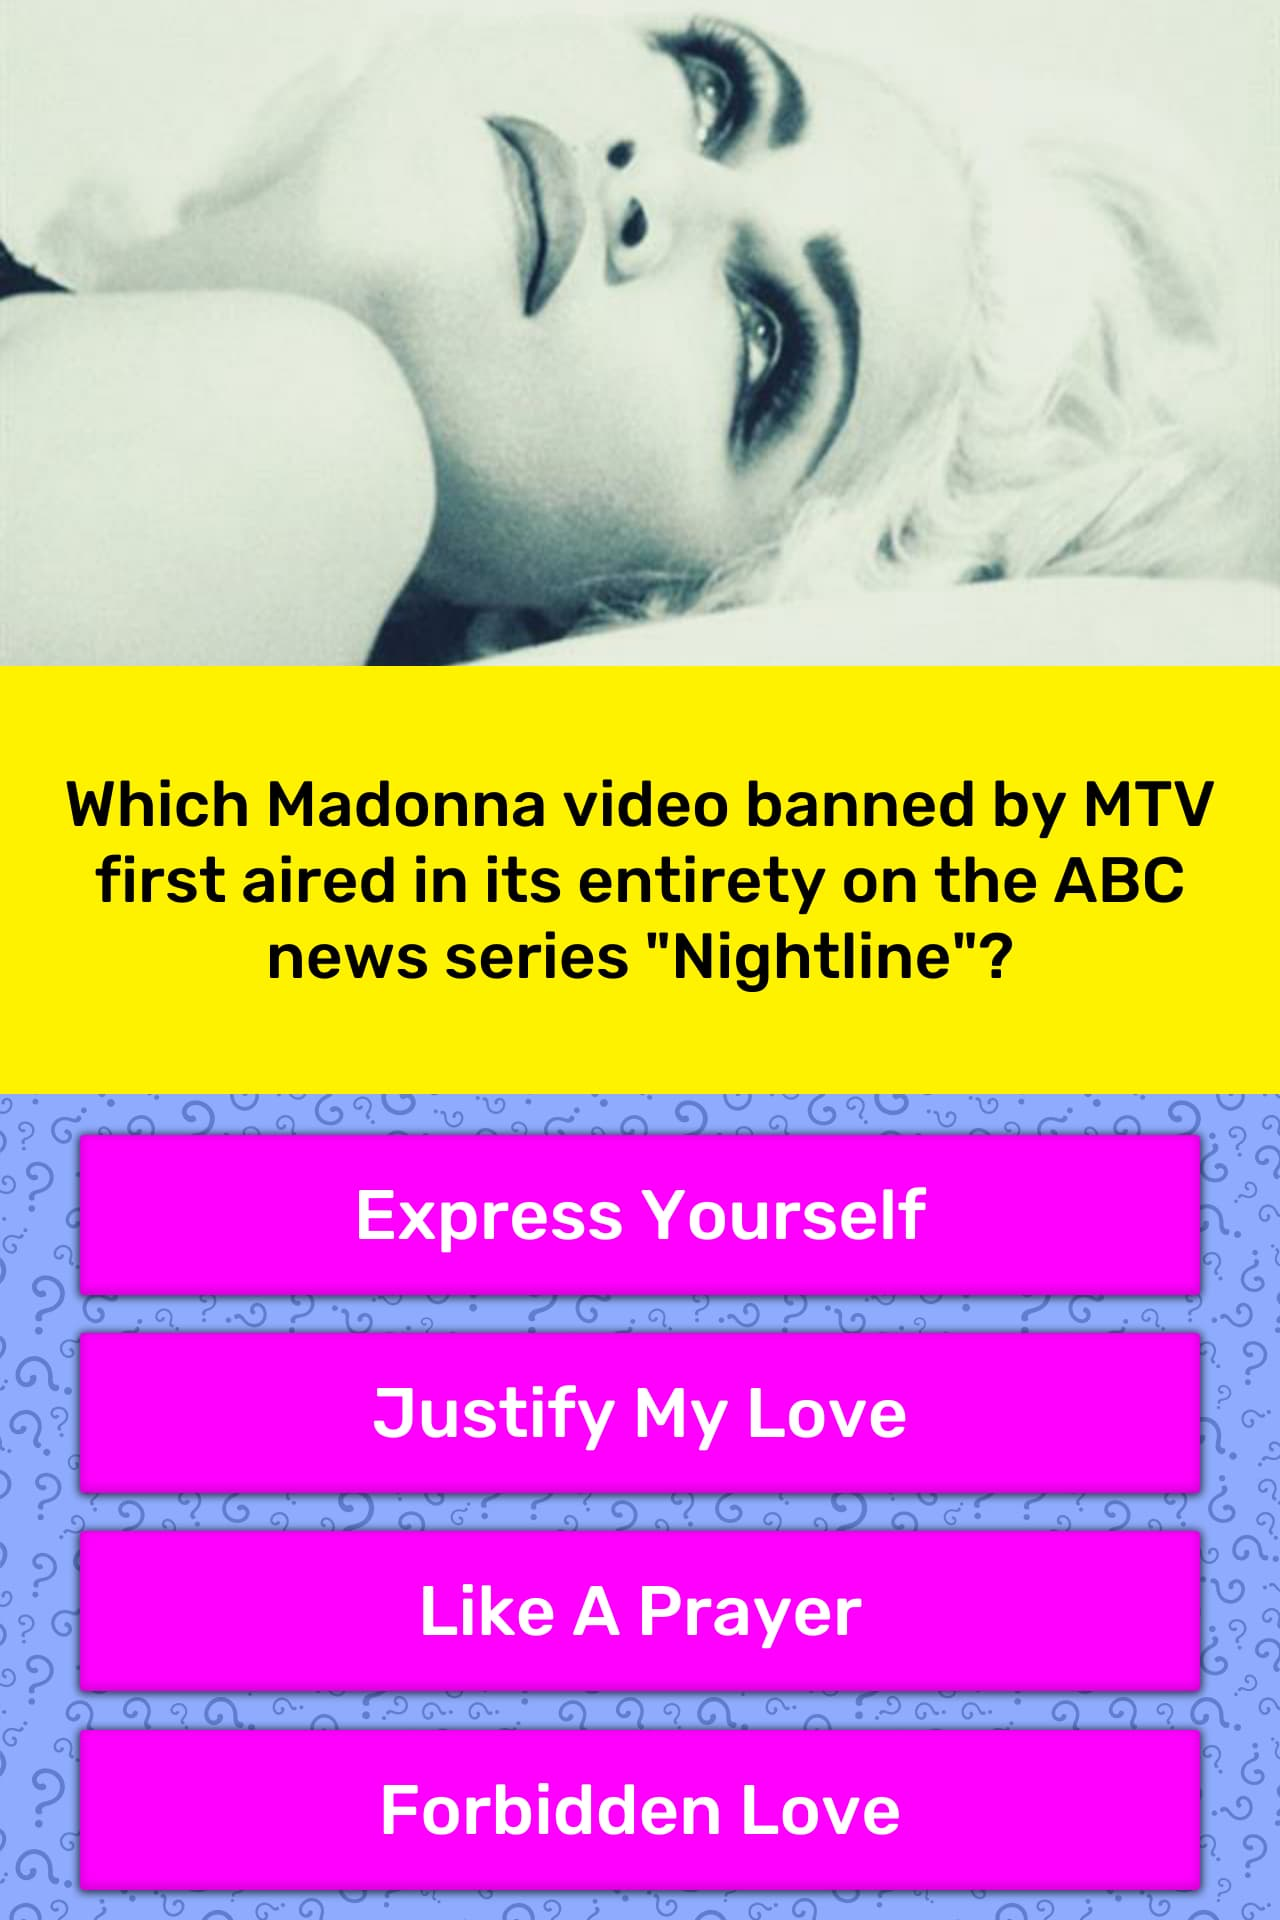 Which Madonna video banned by MTV      Trivia Answers   QuizzClub